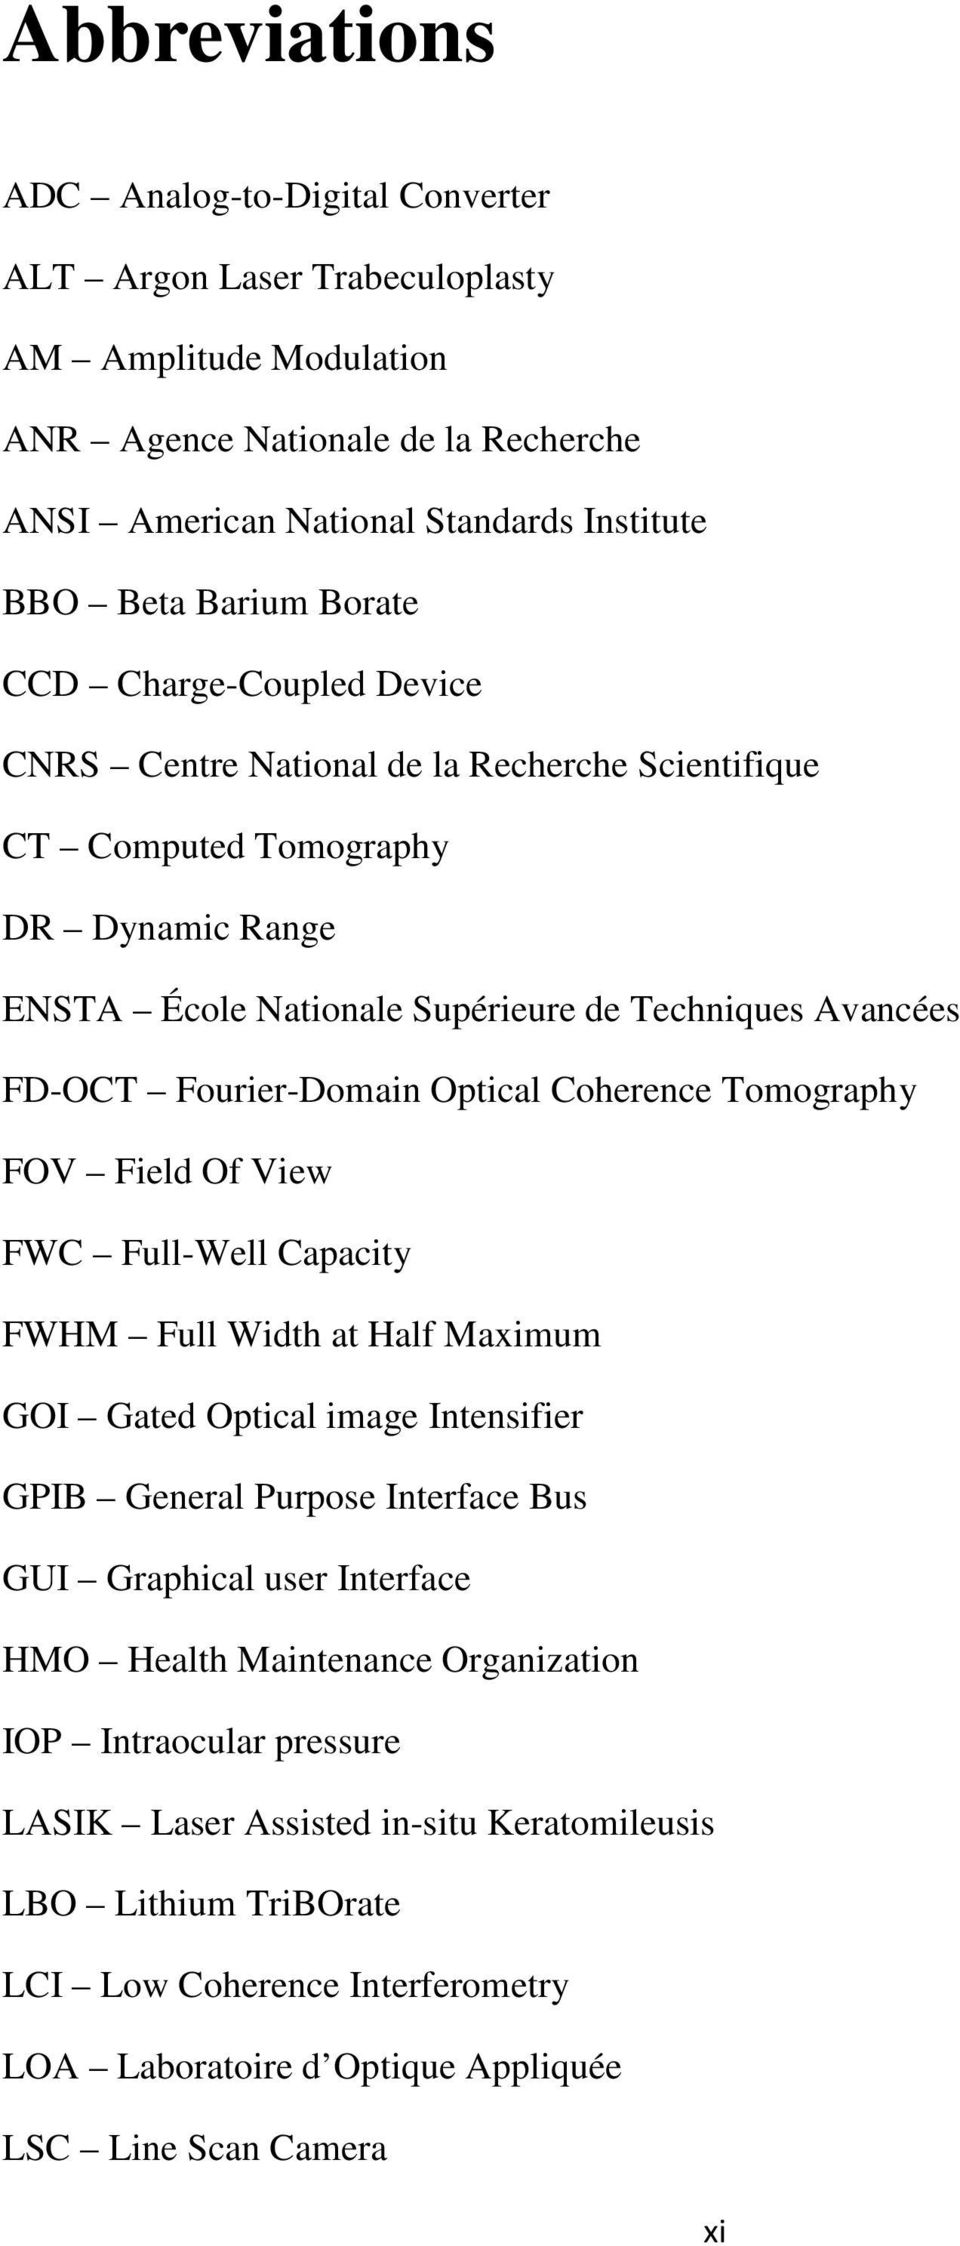 Fourier-Domain Optical Coherence Tomography FOV Field Of View FWC Full-Well Capacity FWHM Full Width at Half Maximum GOI Gated Optical image Intensifier GPIB General Purpose Interface Bus GUI